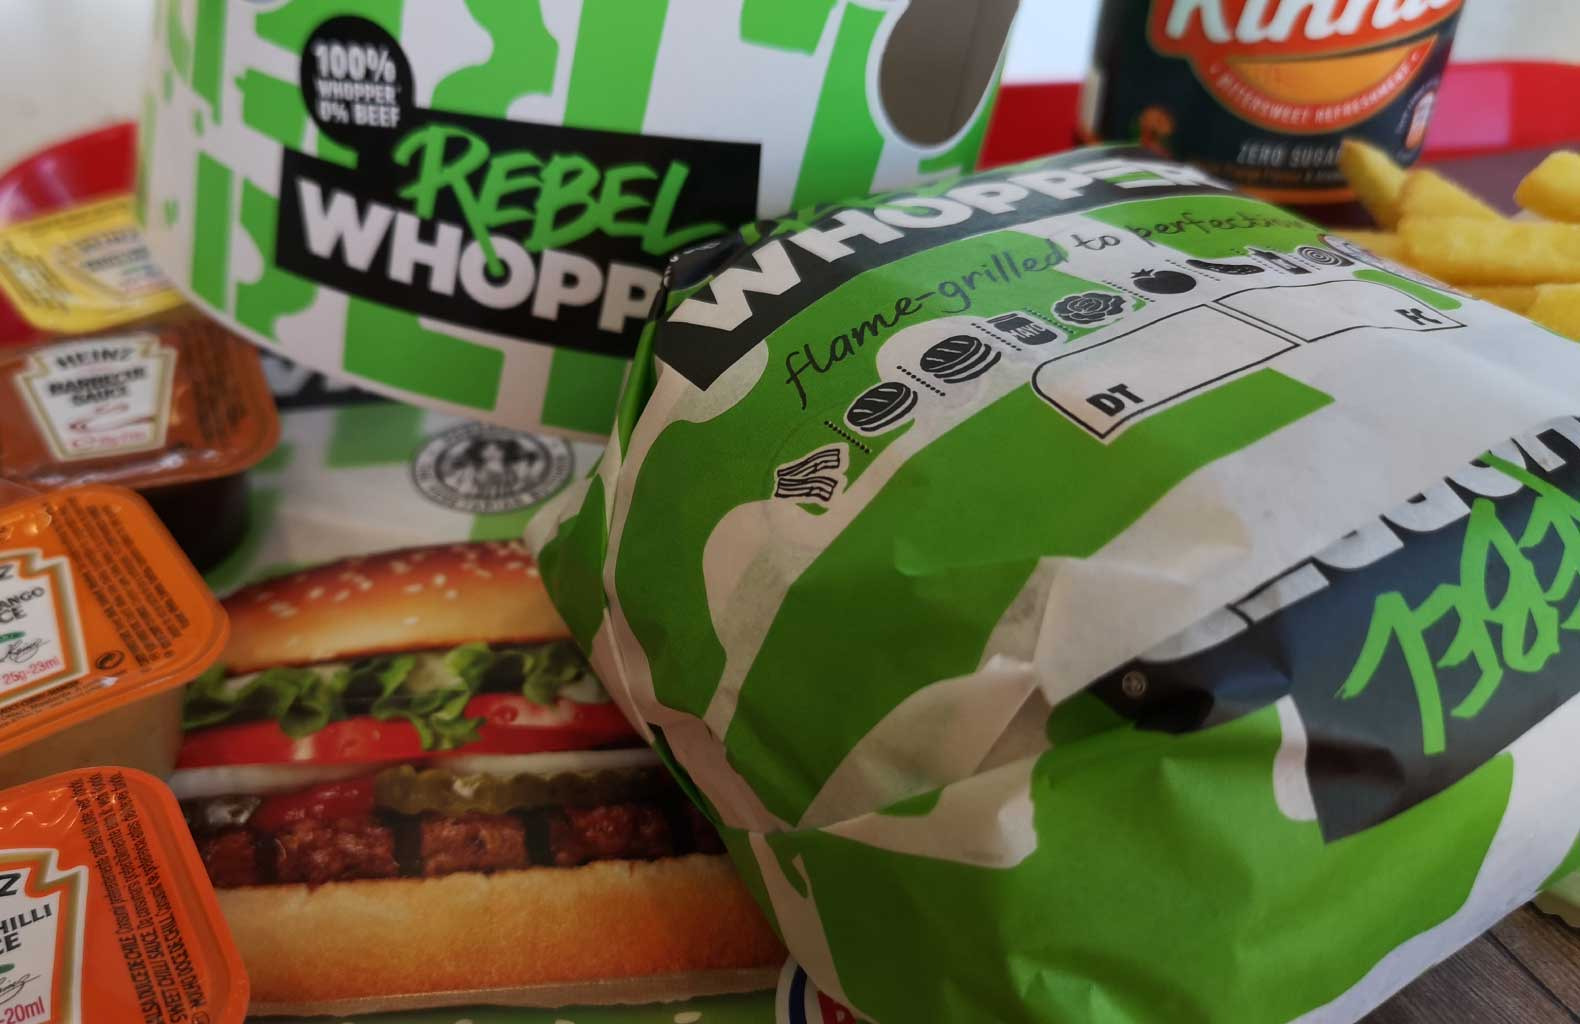 rebel whopper malta burger king vegan vegetarian fast food